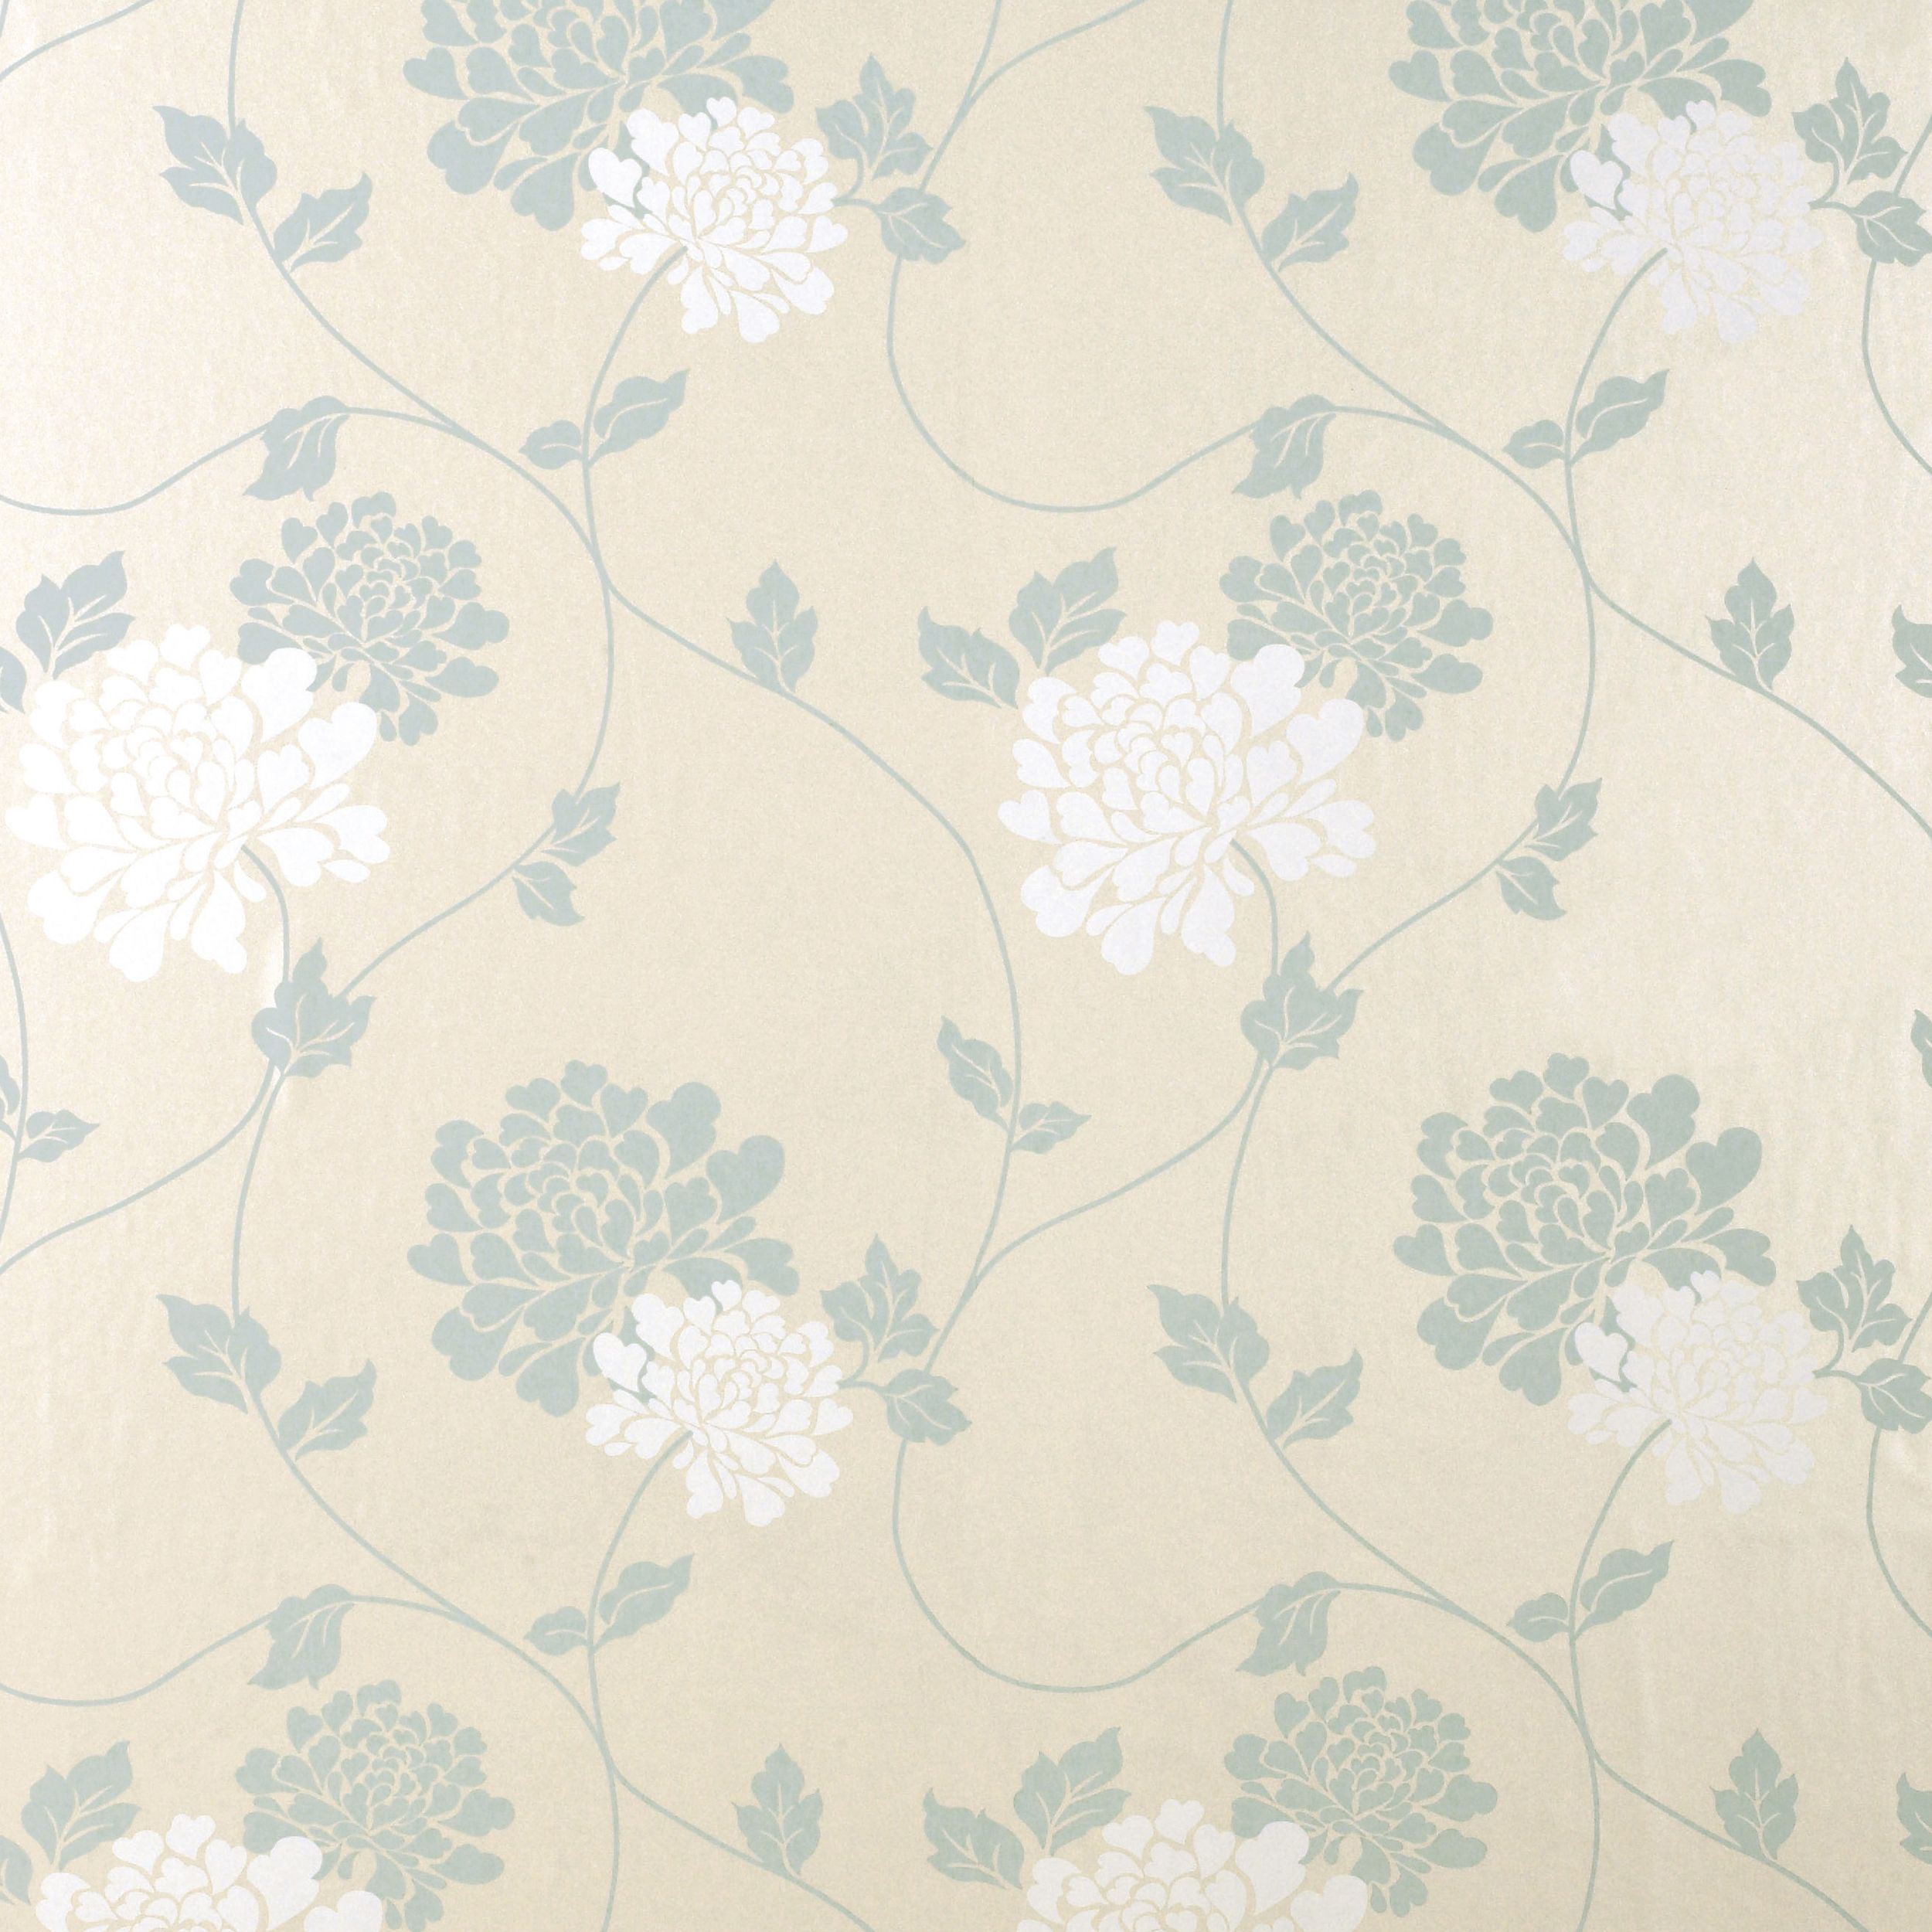 Isodore duck egg floral wallpaper at laura ashley - Laura ashley sevilla ...